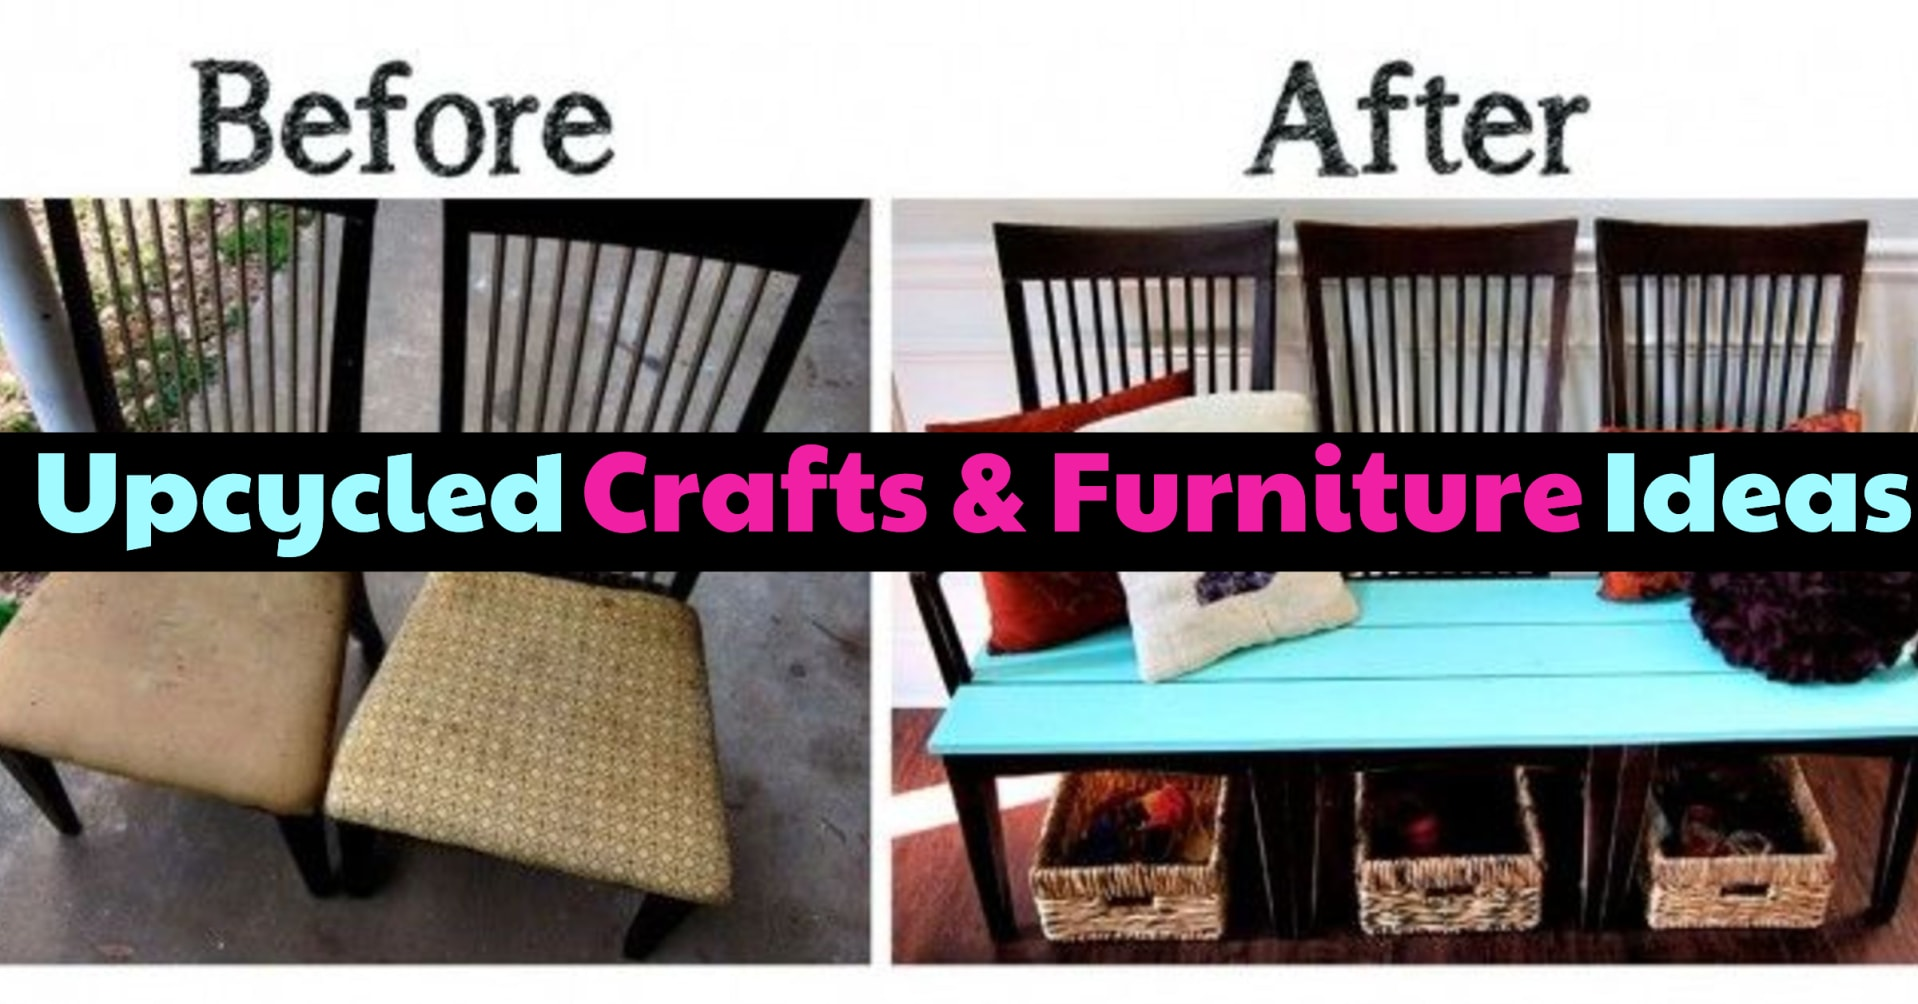 Easy DIY upcycled crafts and furniture ideas